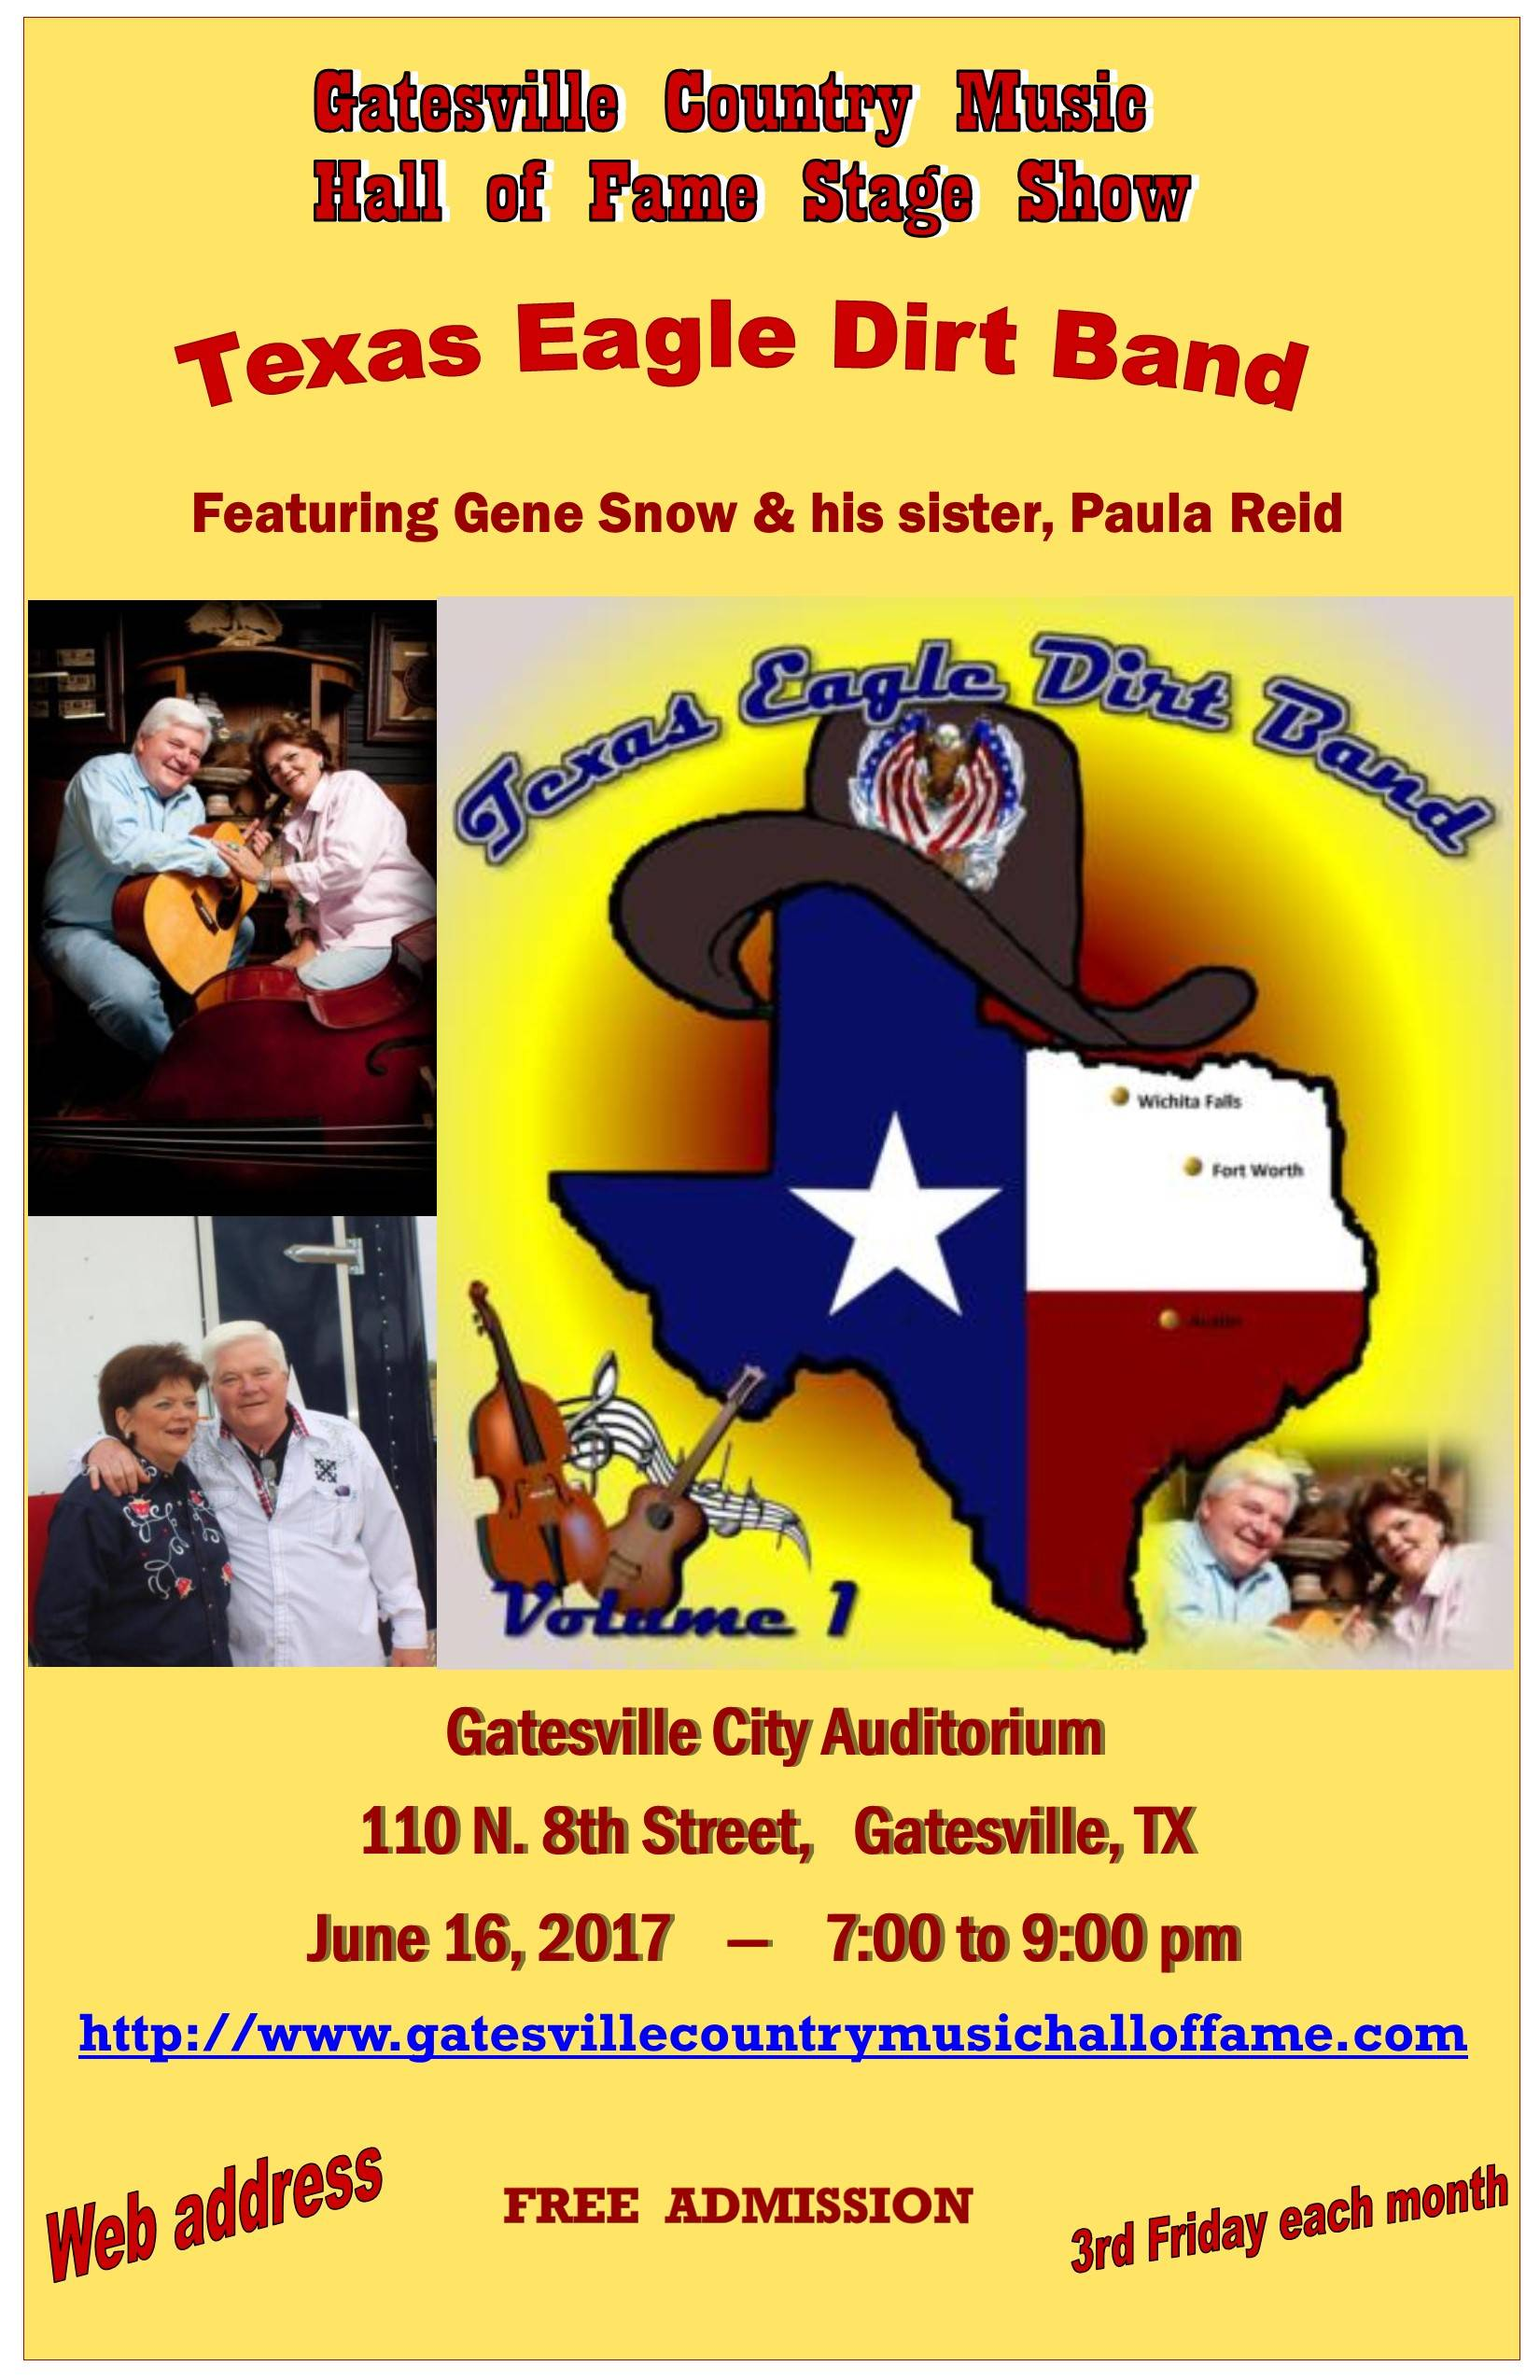 Gene Snow & Paula Reid, Texas Eagle Dirt Band